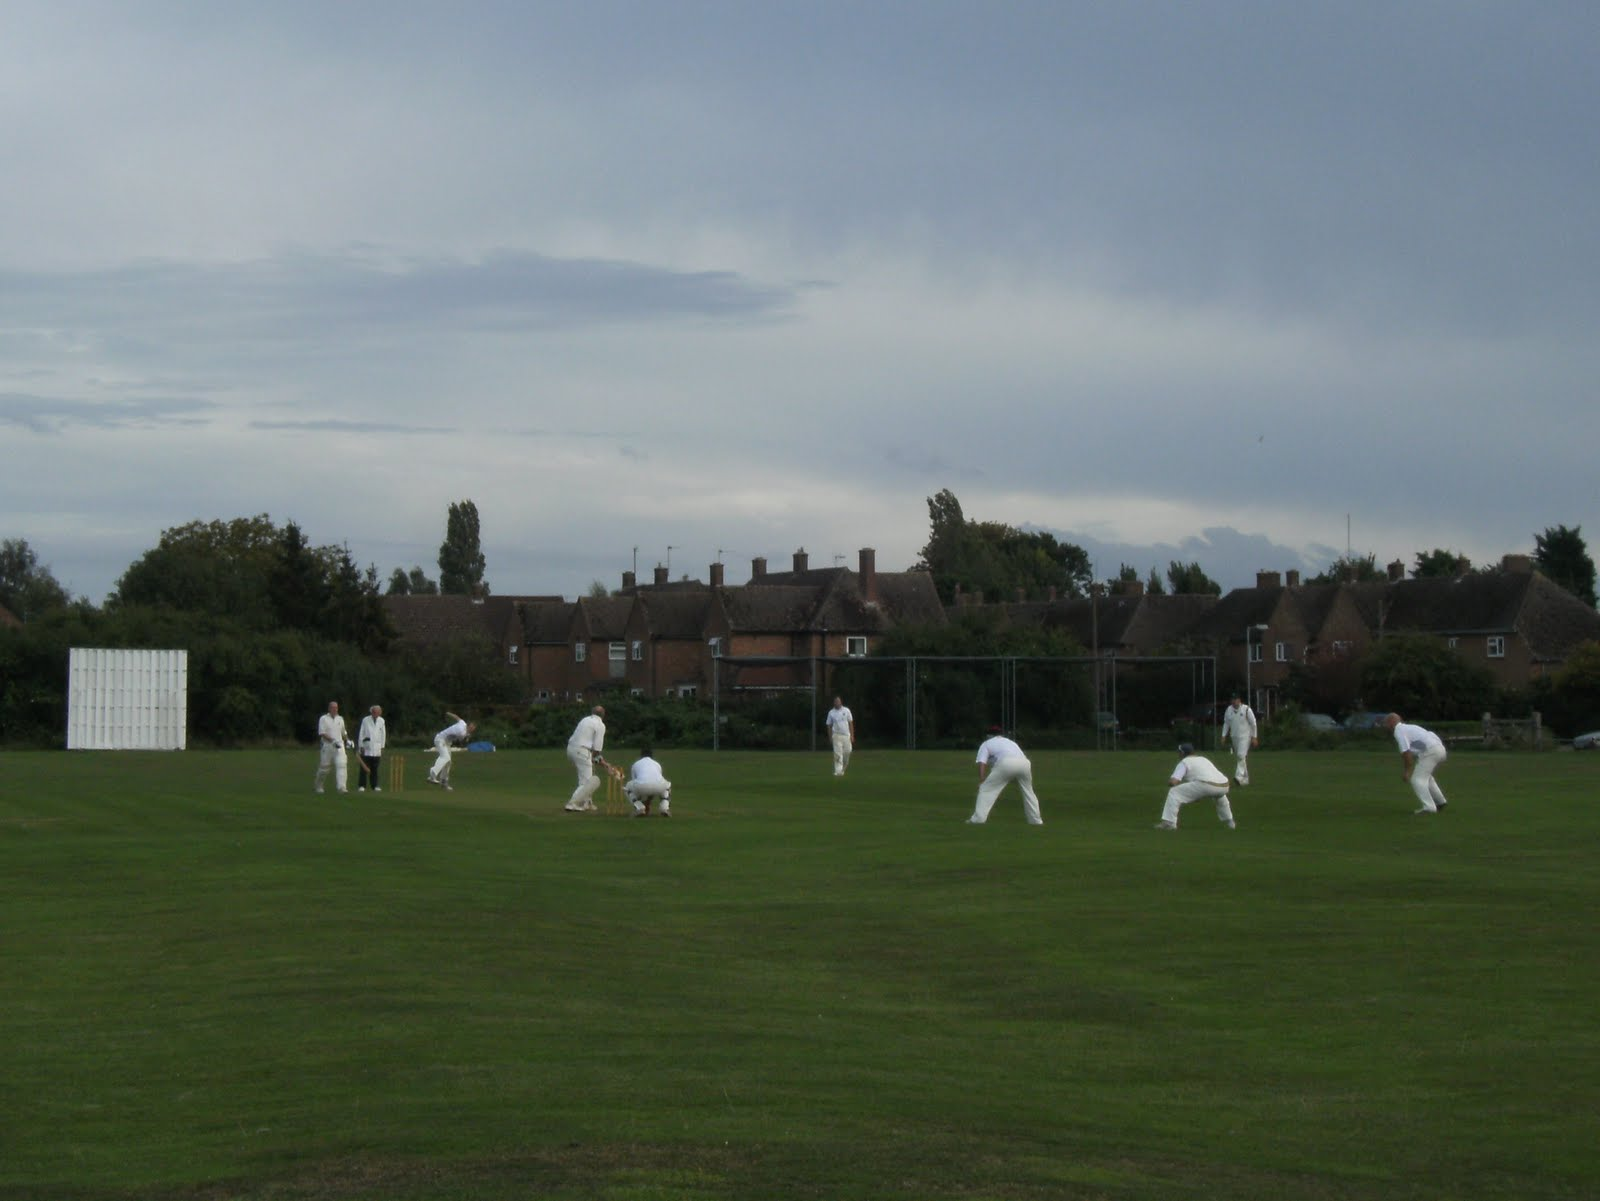 DSCF9486 An undulating cricket pitch at Godmanchester